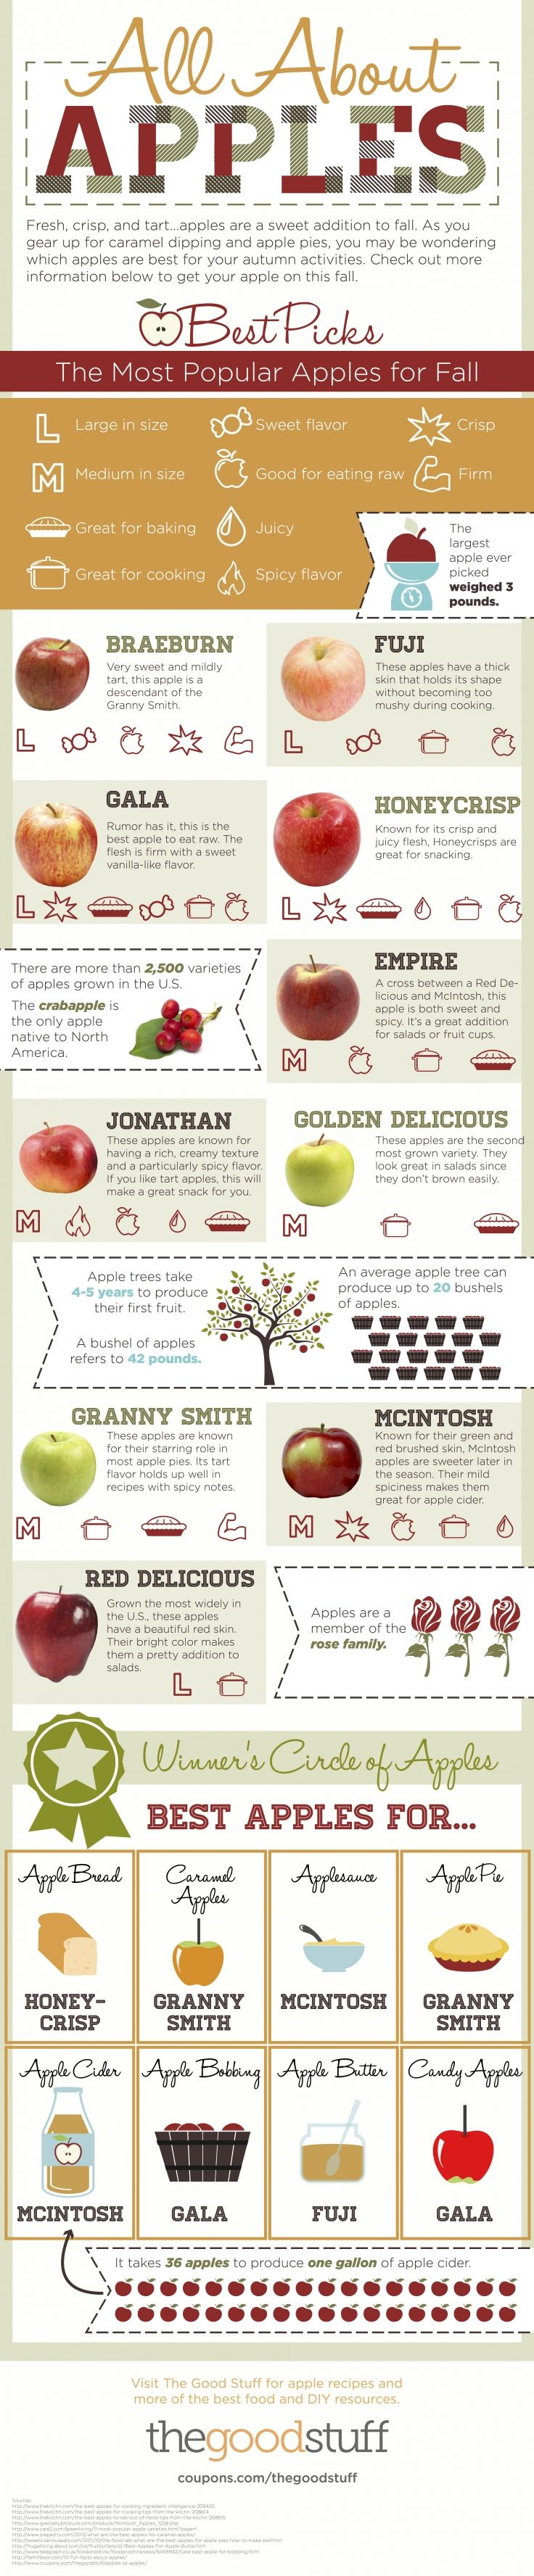 All About Apples #foodfacts